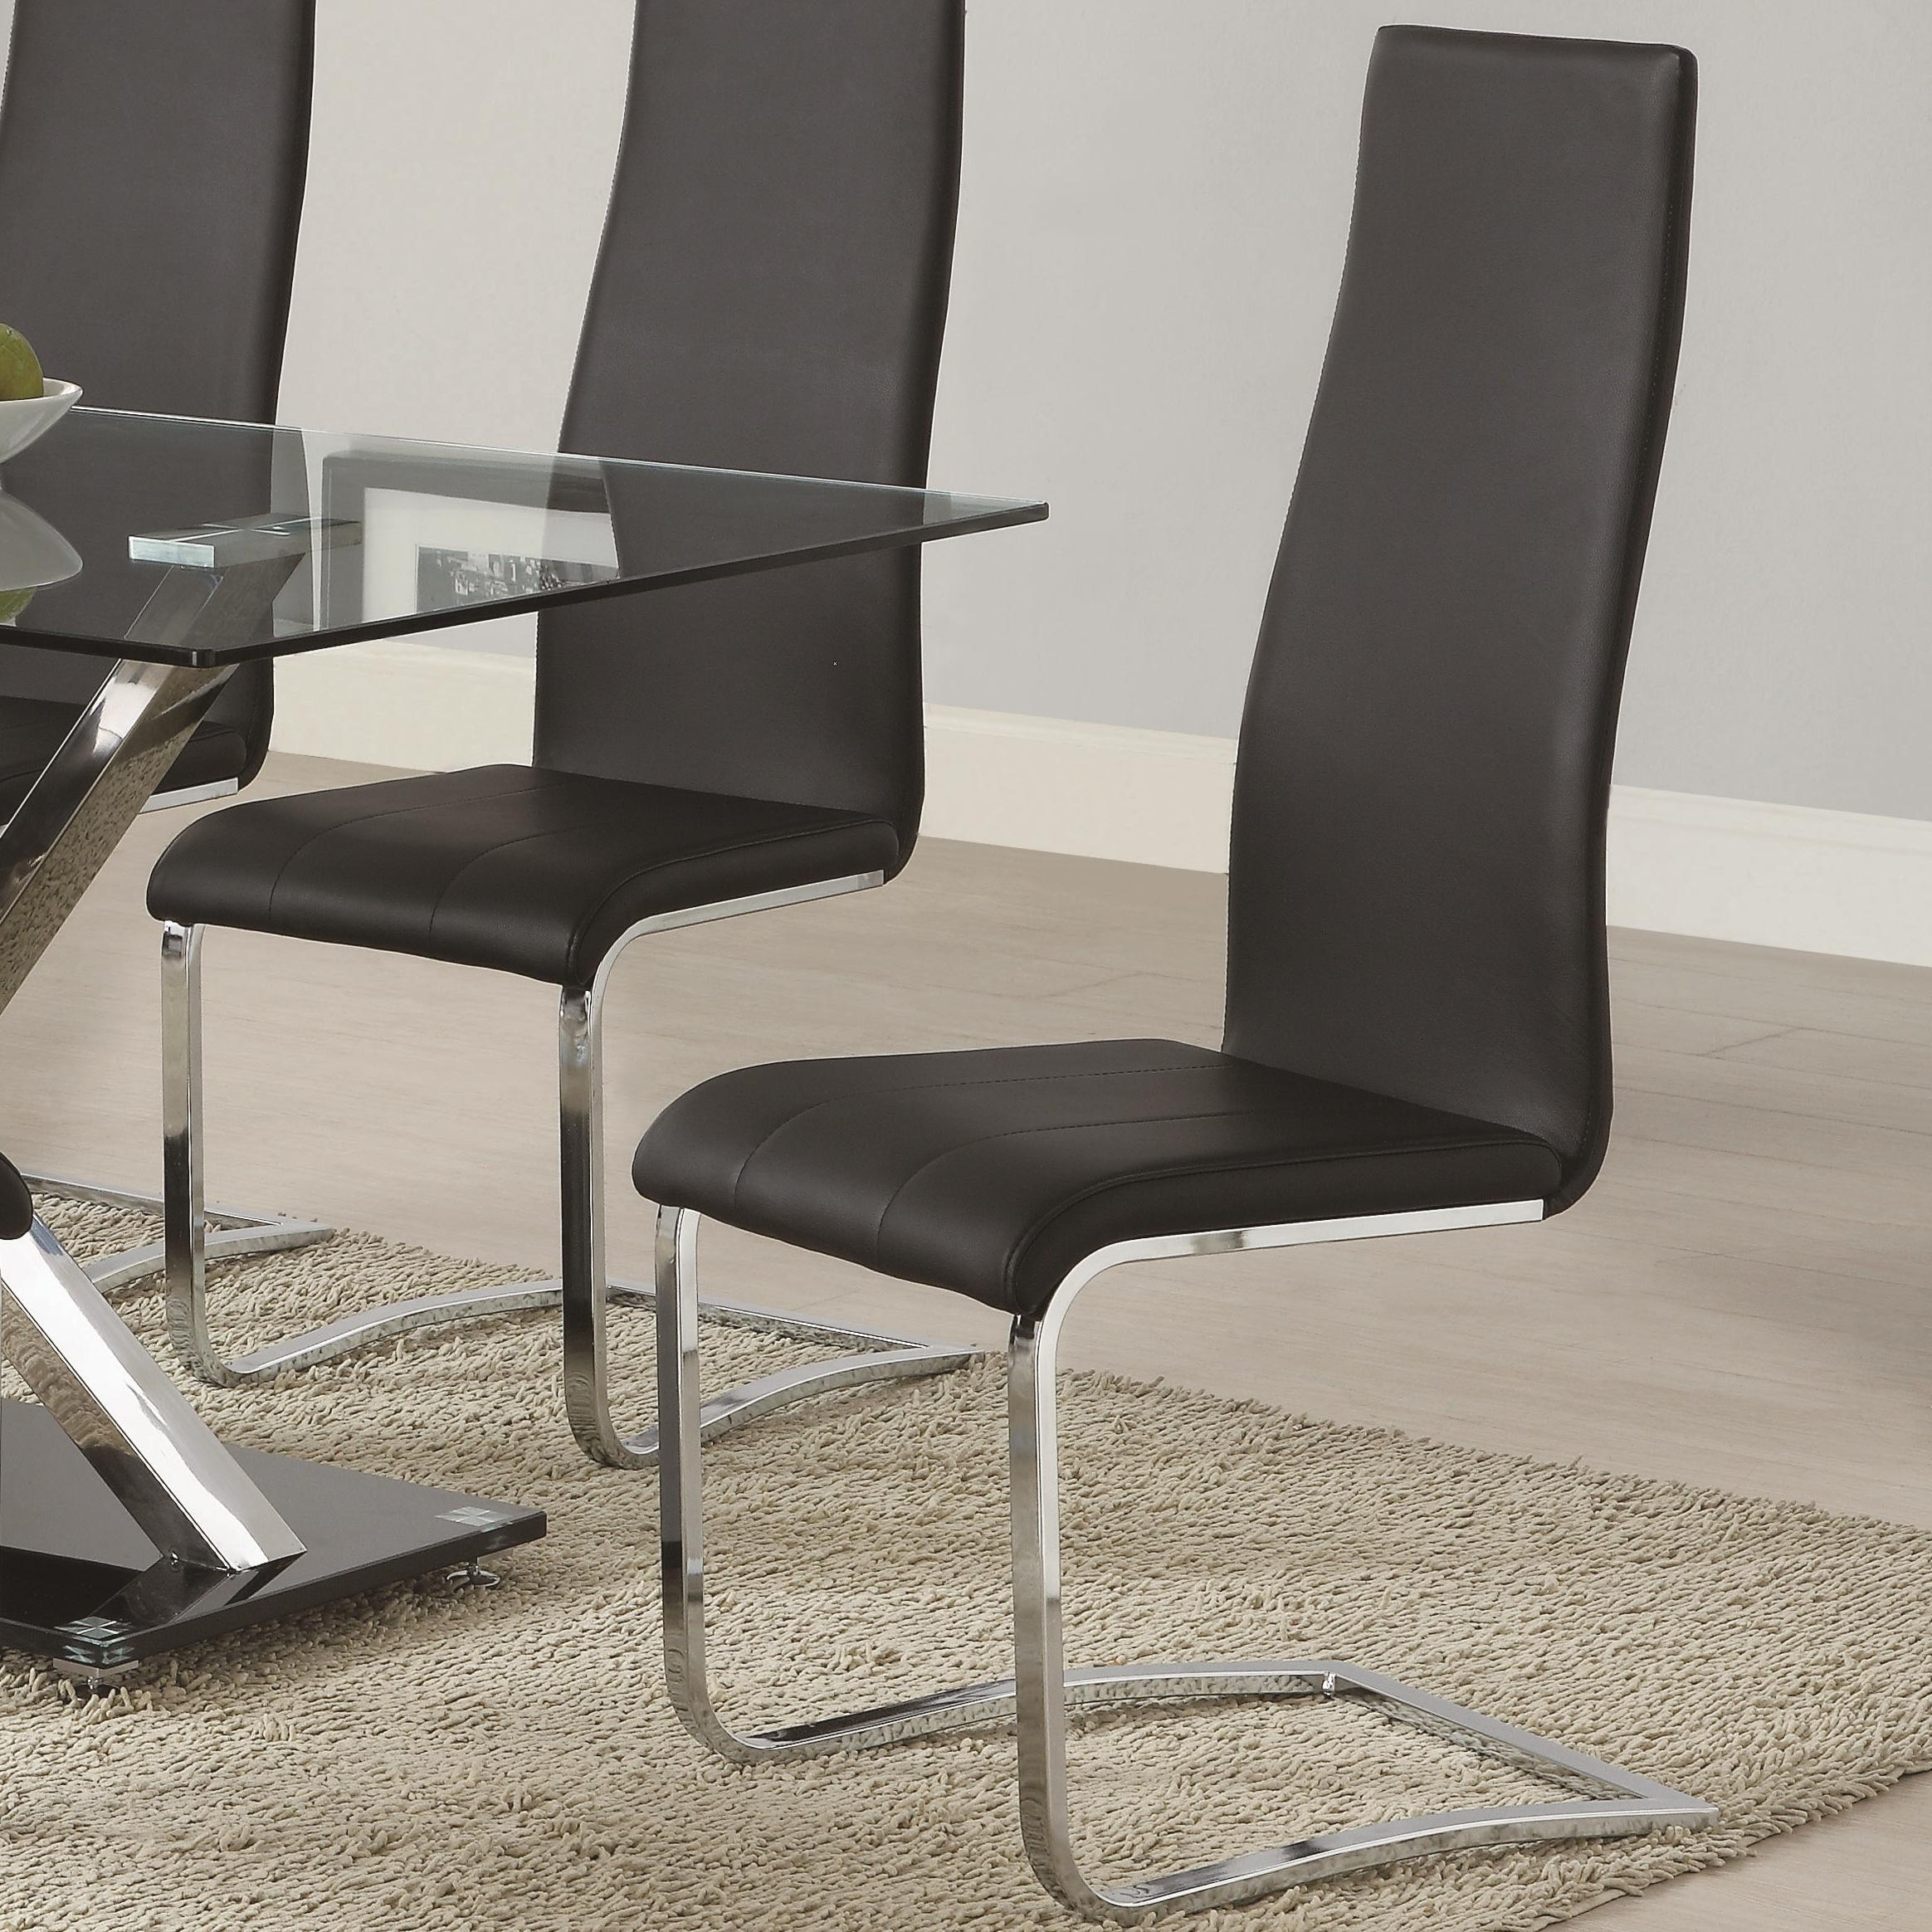 Leather Dining Room Chairs Modern Dining Black Faux Leather Dining Chair With Chrome Legs By Coaster At Dunk Bright Furniture